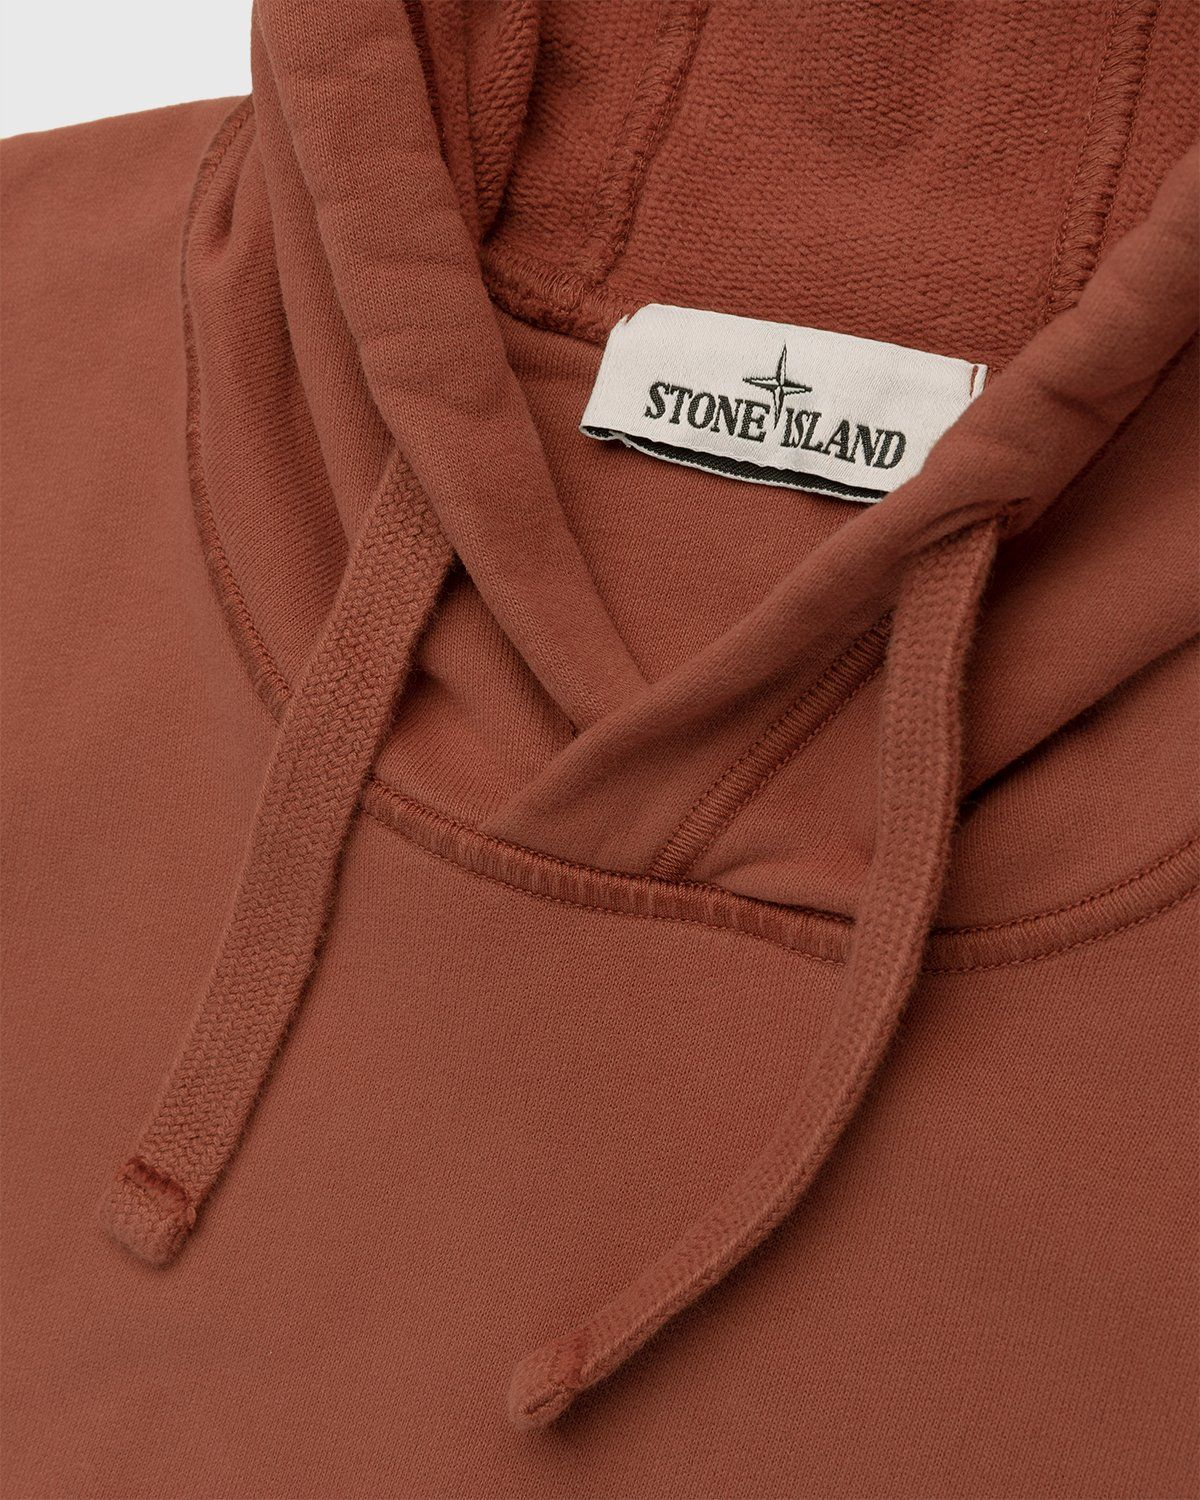 Stone Island – Dust Color Treatment Hoodie Brick Red - Image 3